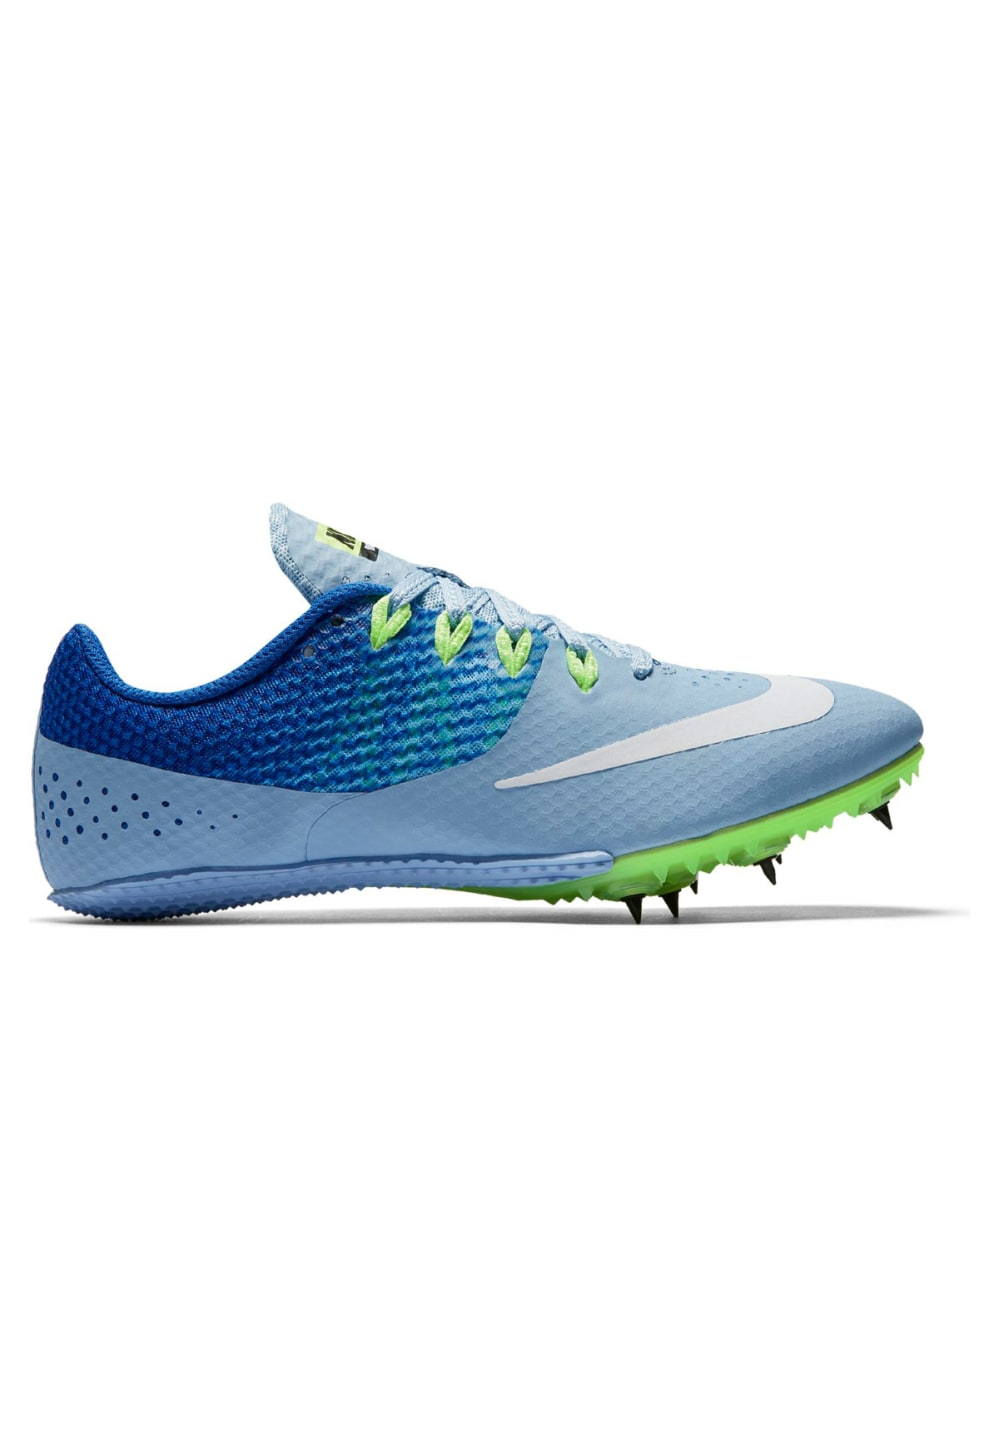 Nike Zoom Rival S 8 Track Spike Femmes Chaussures pointes